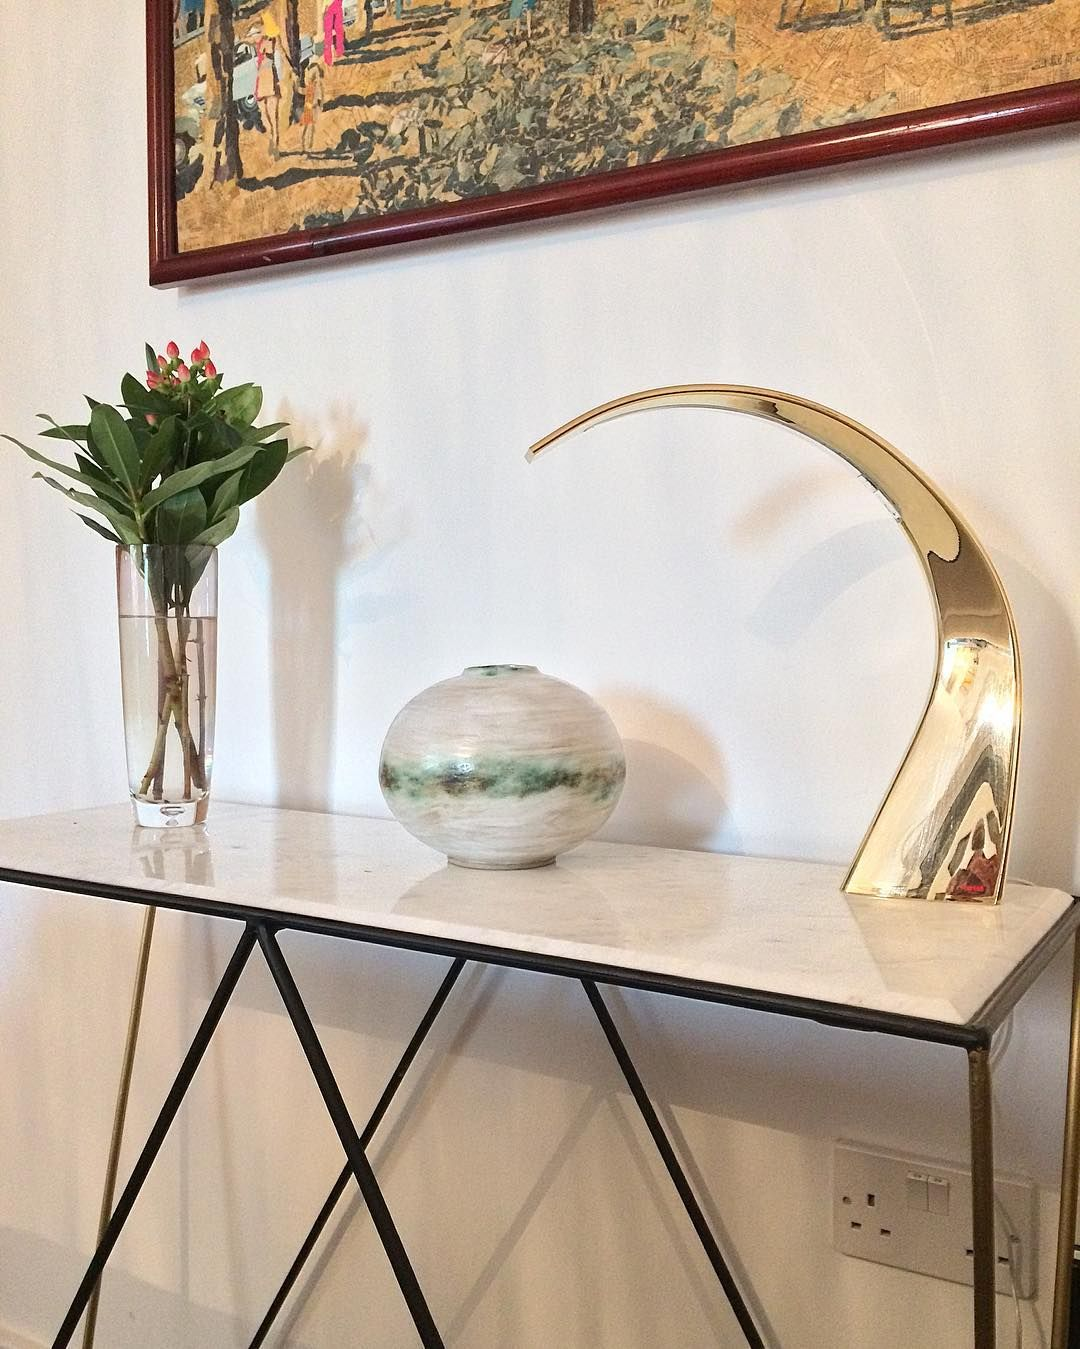 """61 Likes, 3 Comments - Andrew Walker (@andrewwalker.ceramics) on Instagram: """"In its new home.. #handmade #style #interiordesign #clay #ceramics #industrialdesign #pottery…"""""""